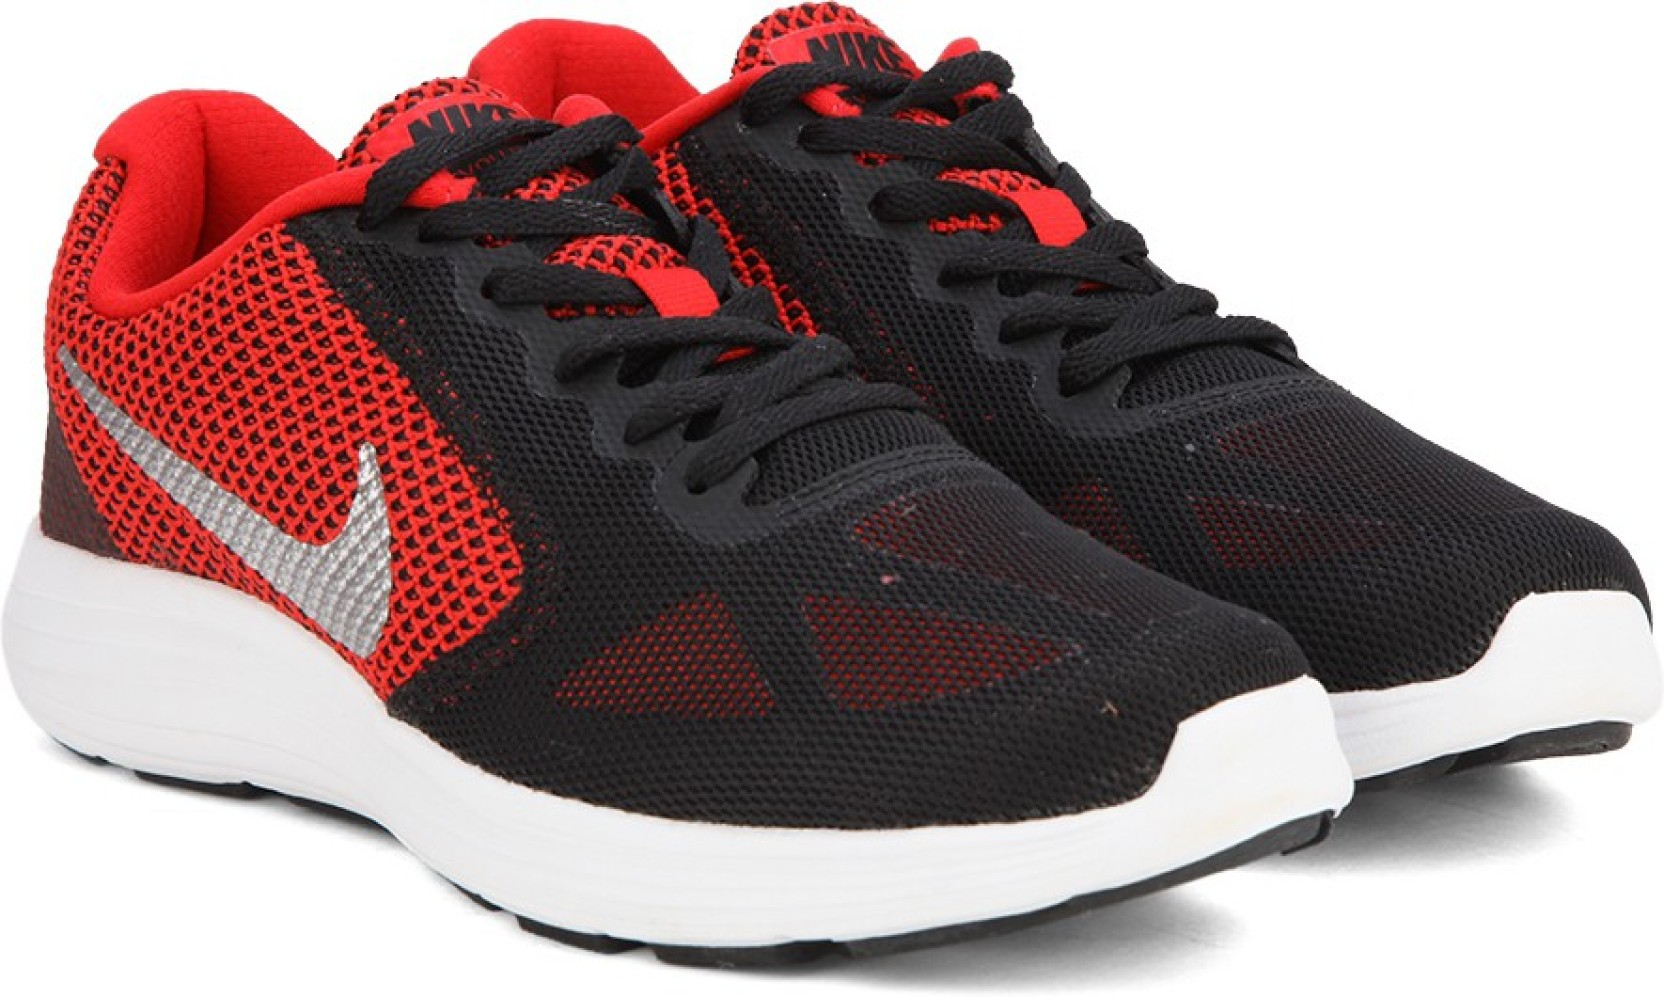 Where To Buy See Kai Run Shoes In Singapore